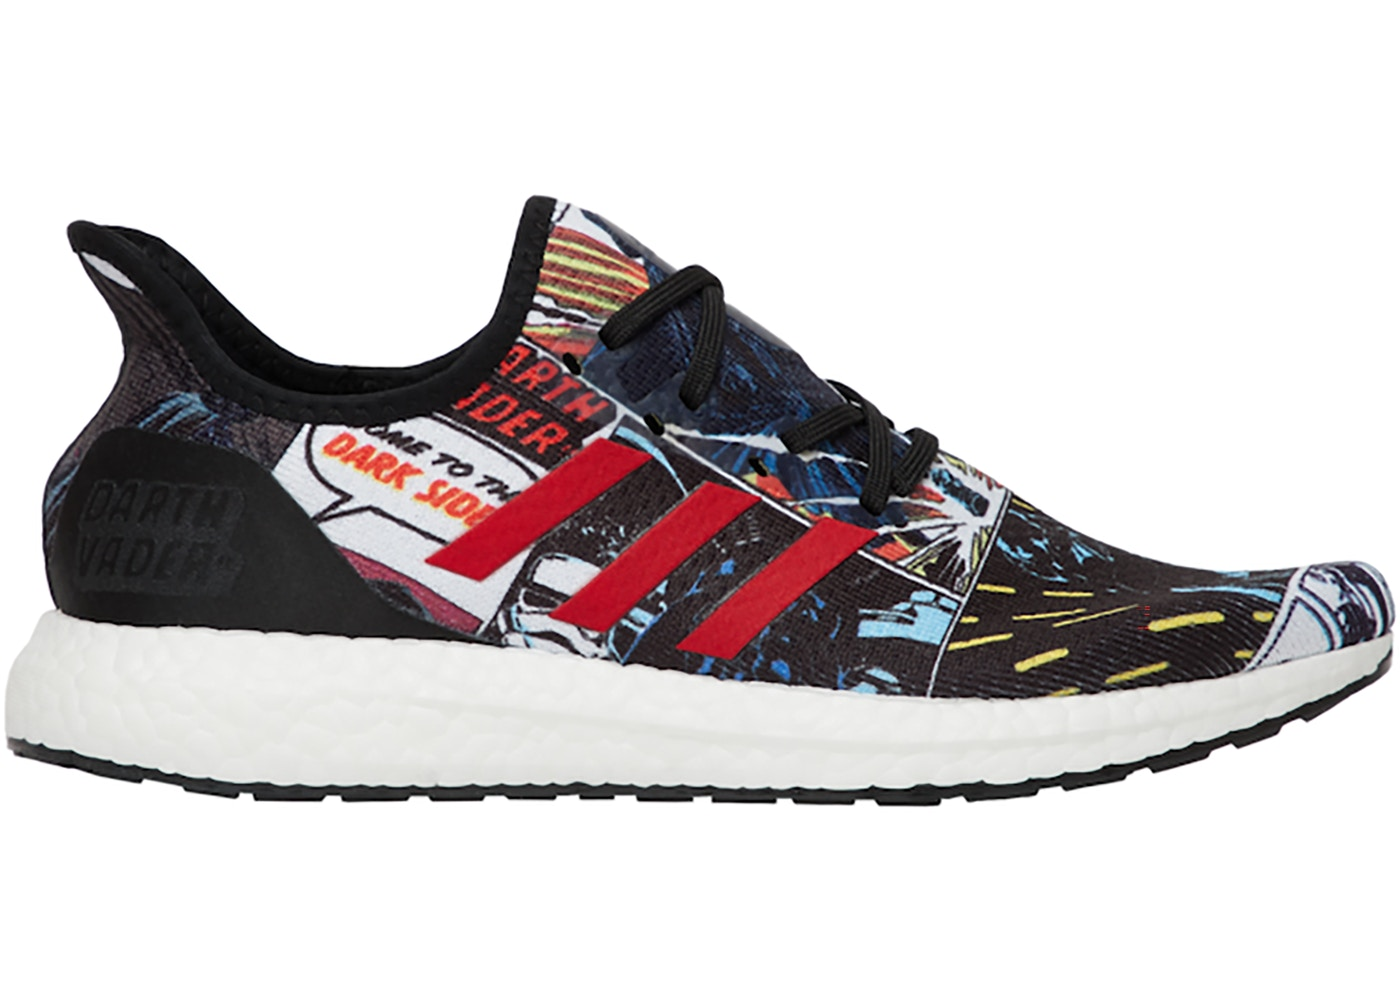 pescado Banquete Campaña  adidas Speedfactory AM4 Star Wars The Force — HypeAnalyzer